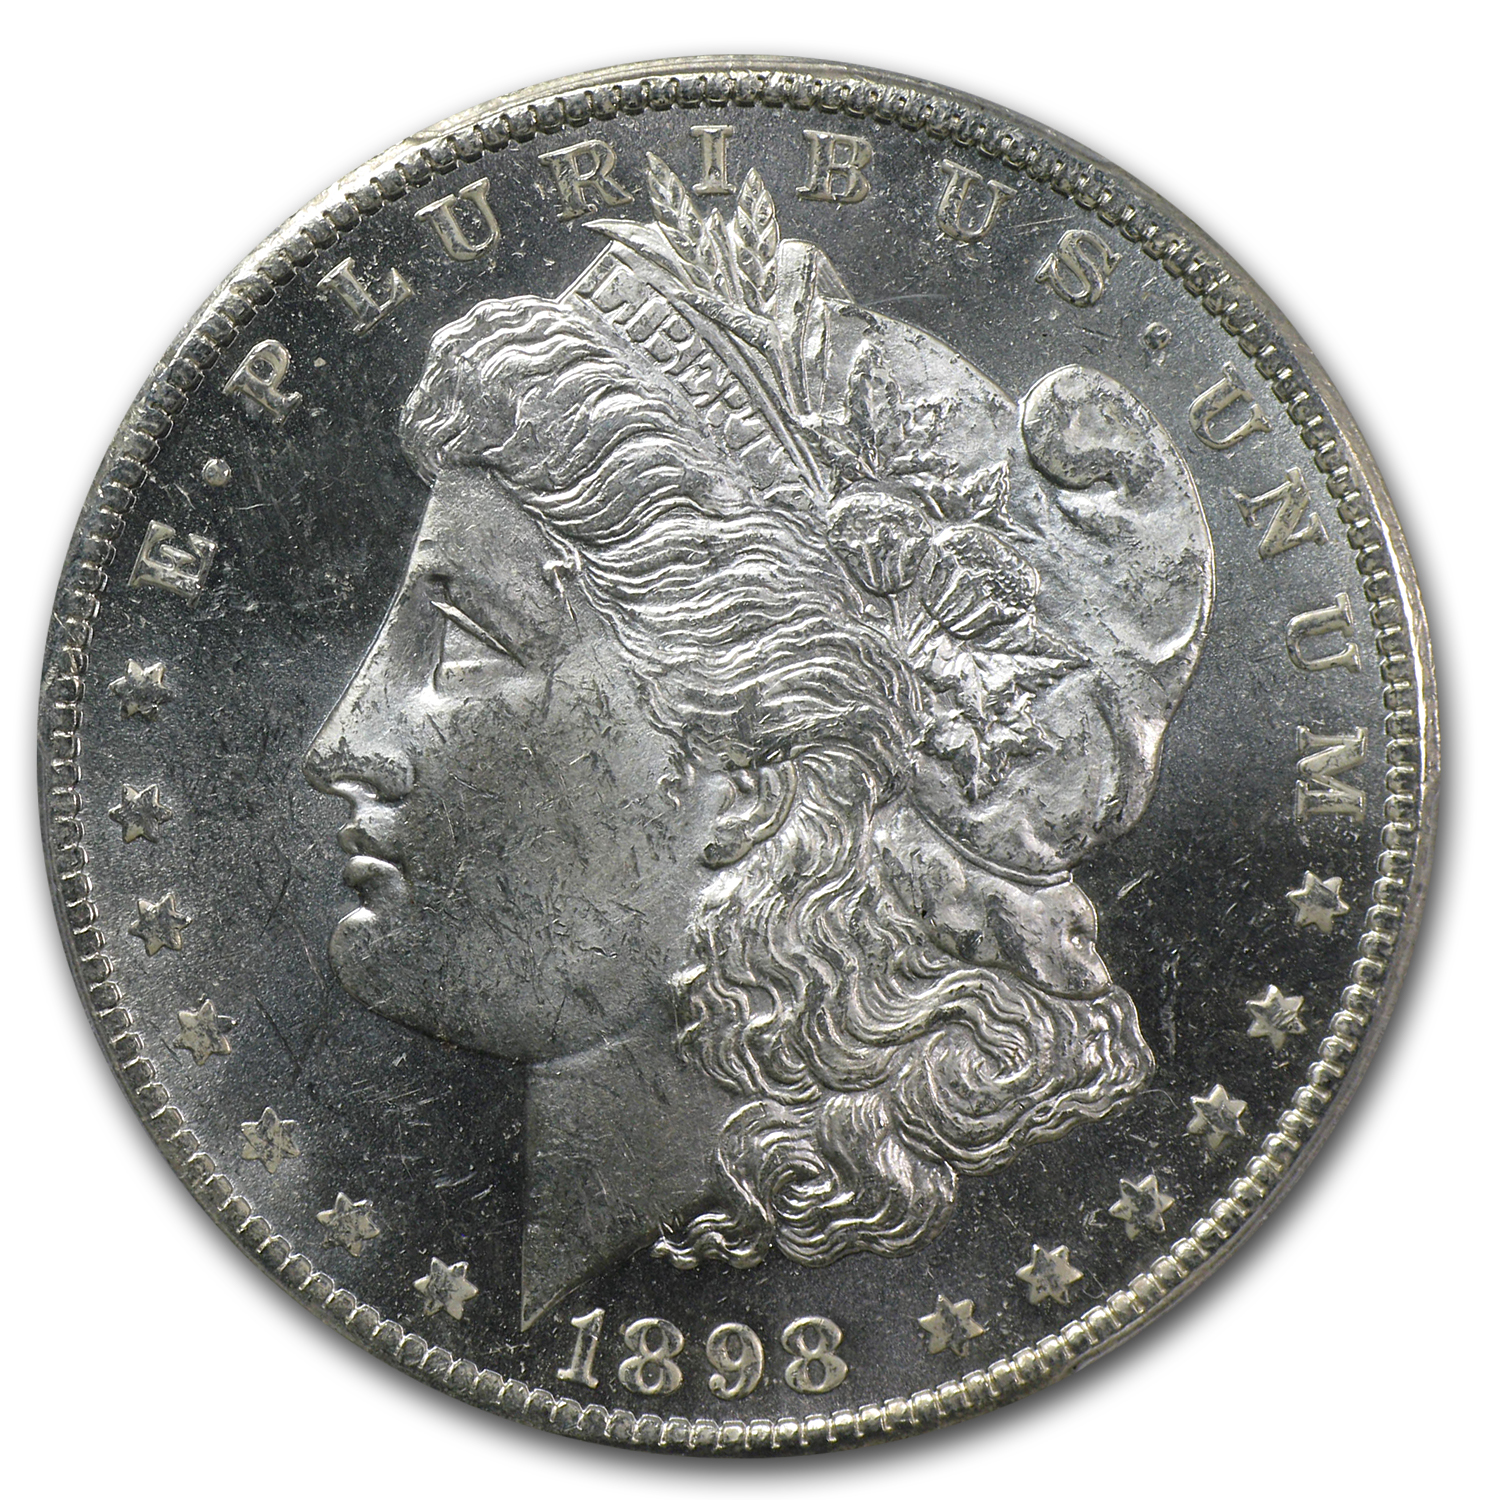 1898-O Morgan Dollar - MS-63 PL Proof Like PCGS